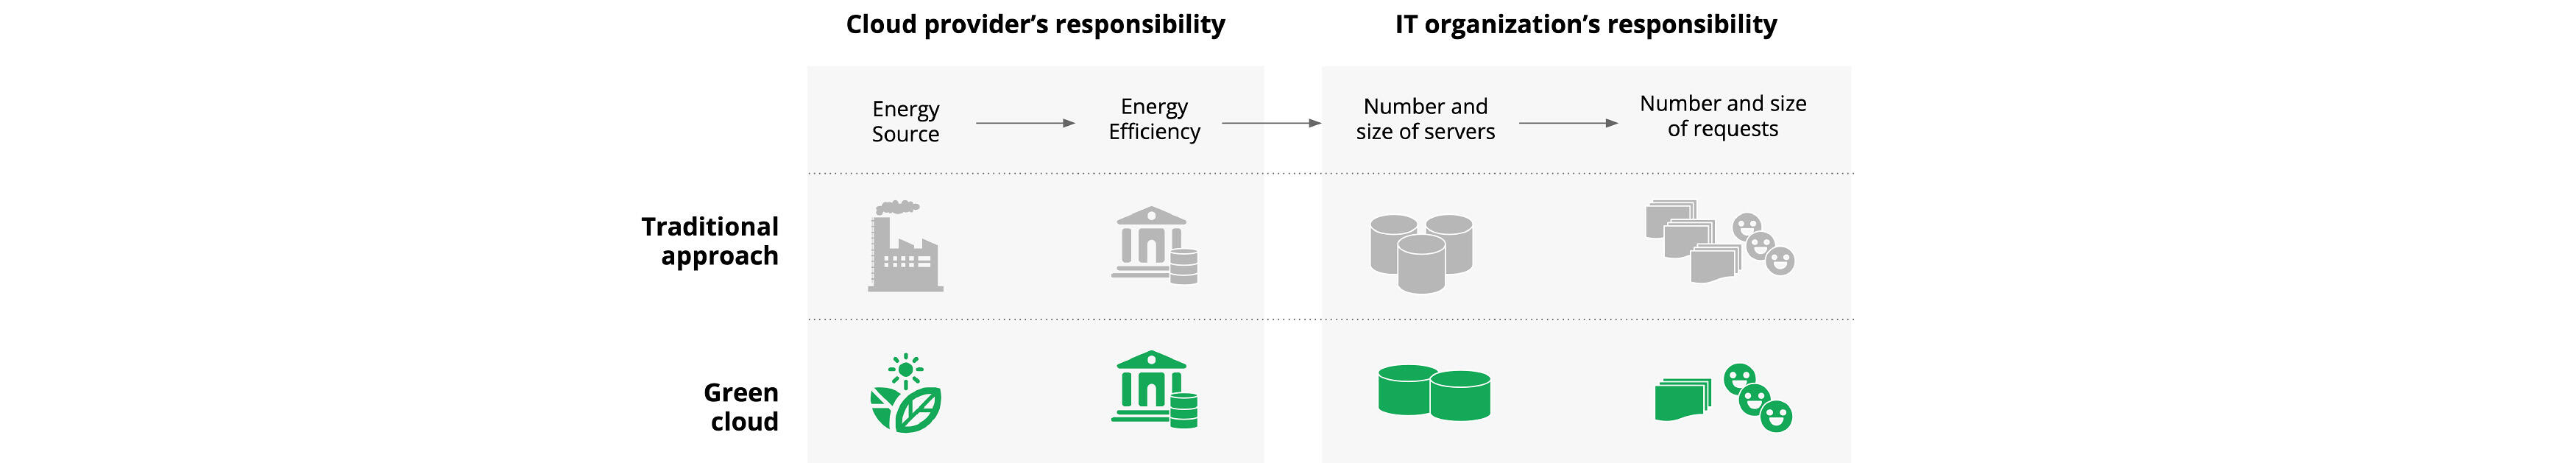 Table showing the various responsibilities of cloud providers / cloud customers in relation to carbon footprint